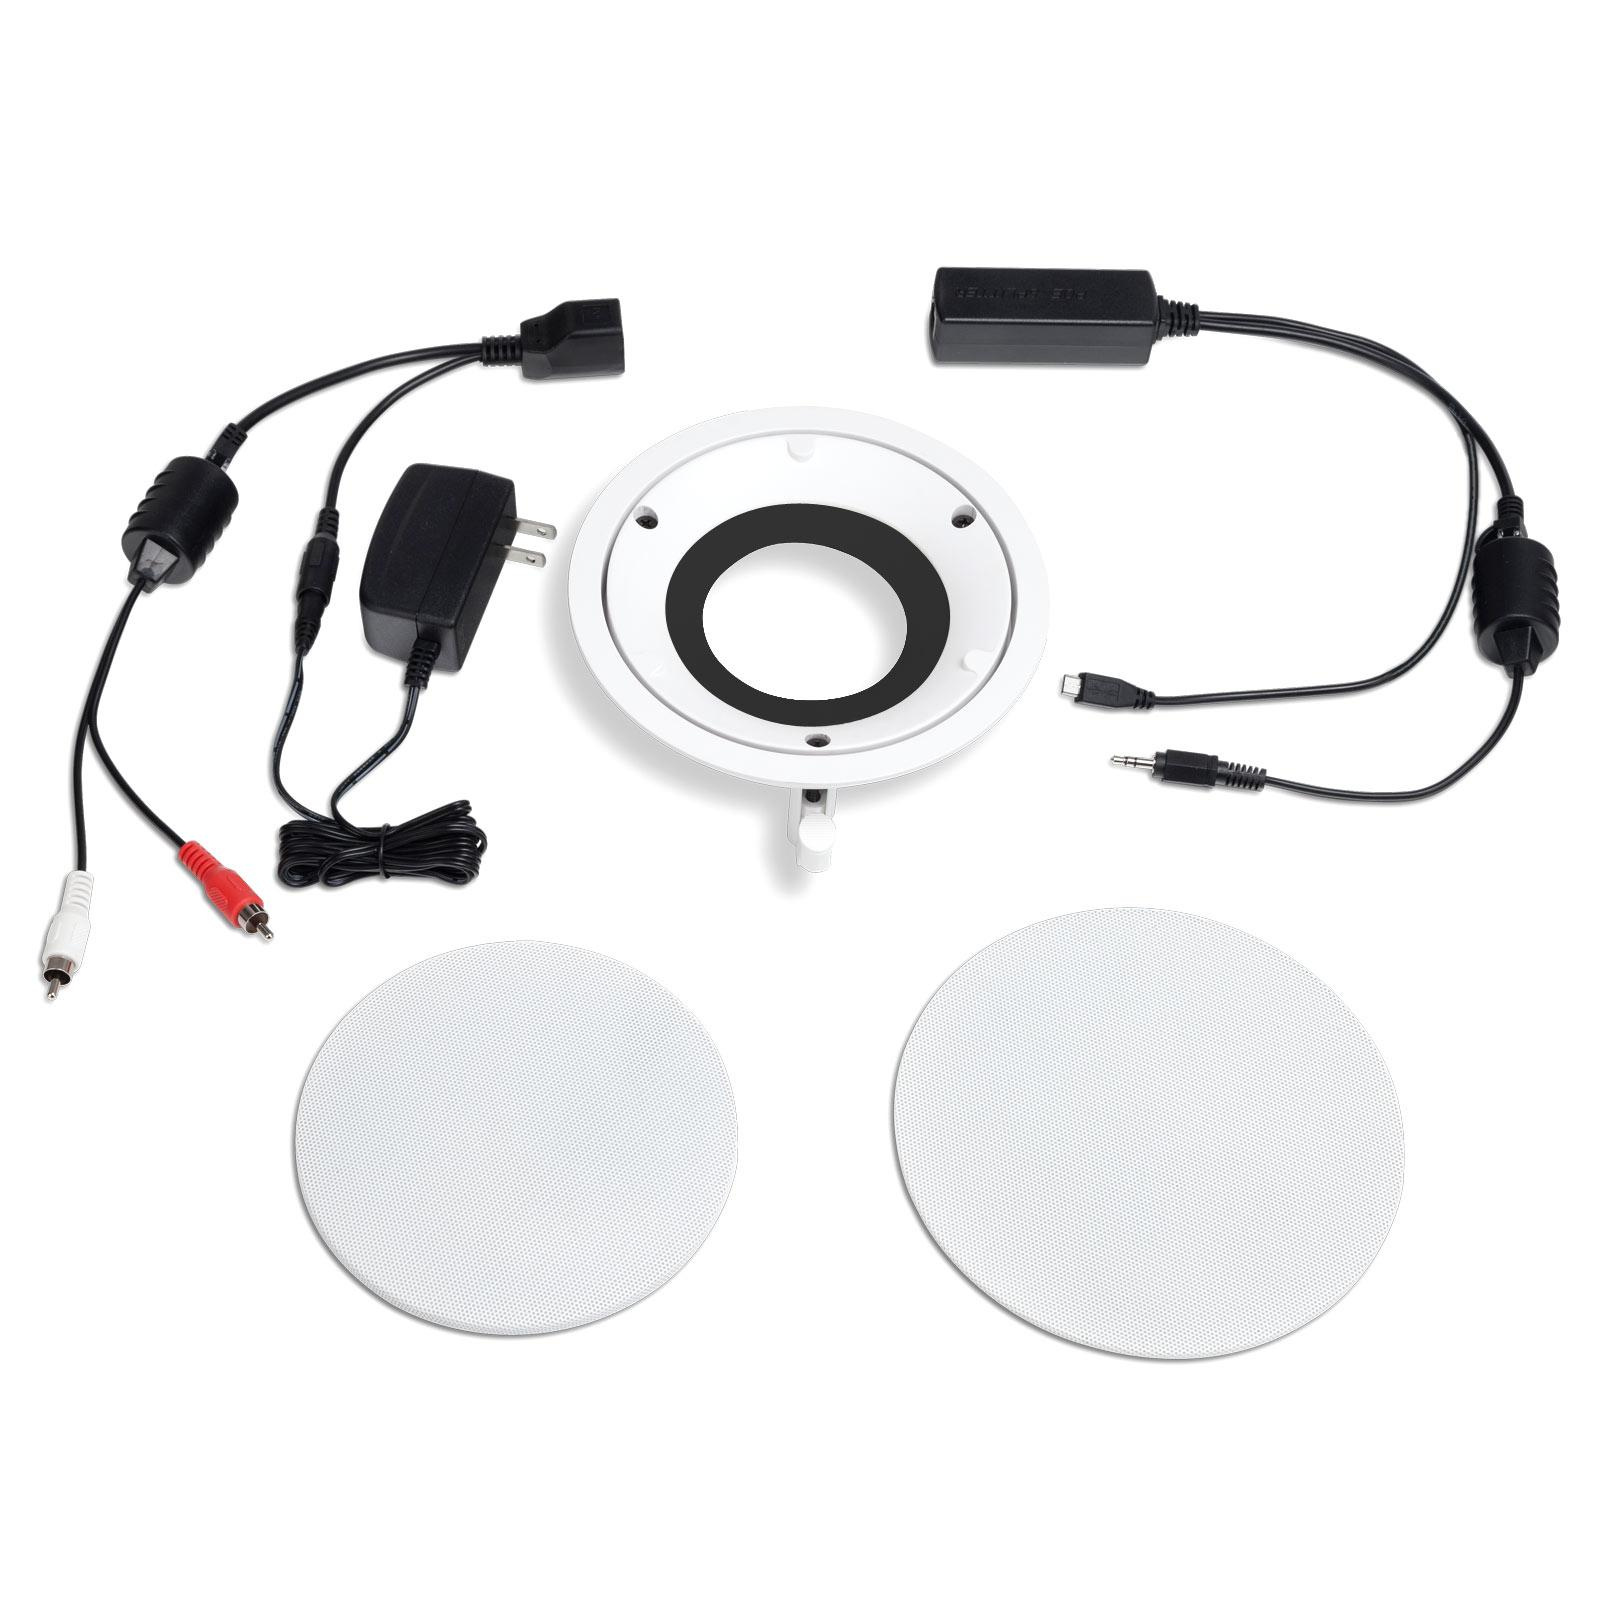 HTD Whole-House Audio Accessories, Discontinued: Micro-pod